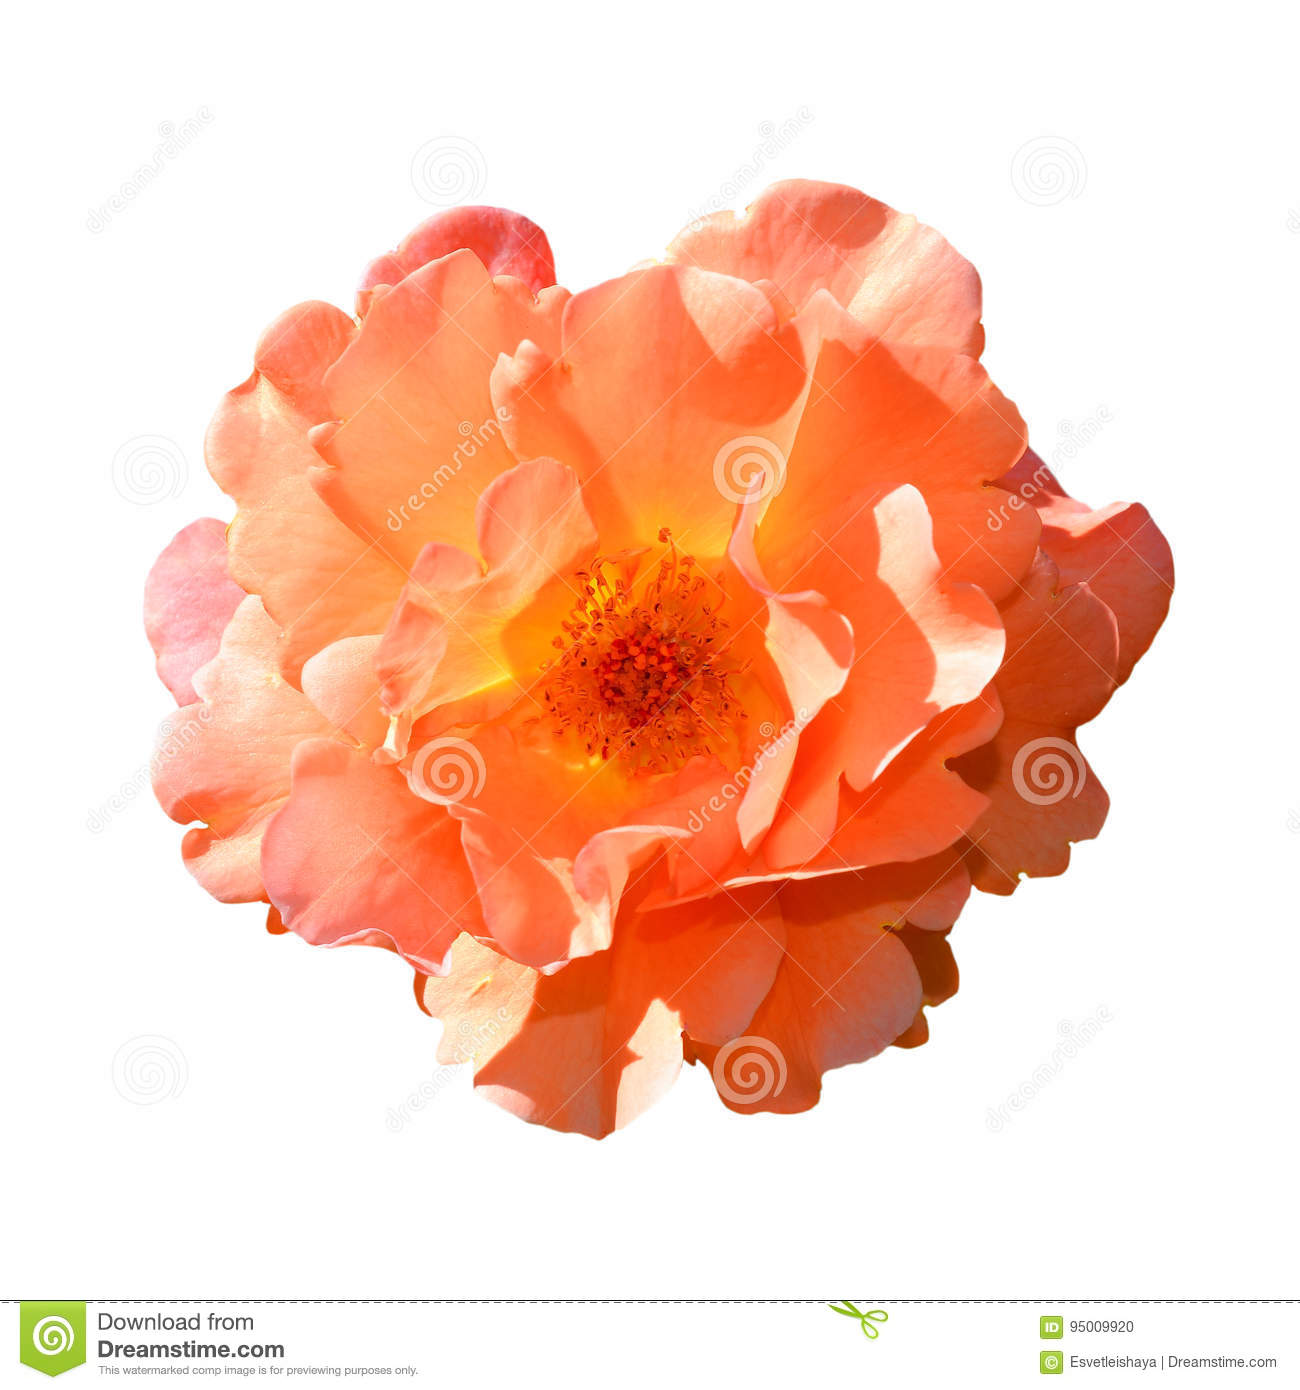 Rose isolated on white background. Fully open gentle pink rose flower head isolated on white background.